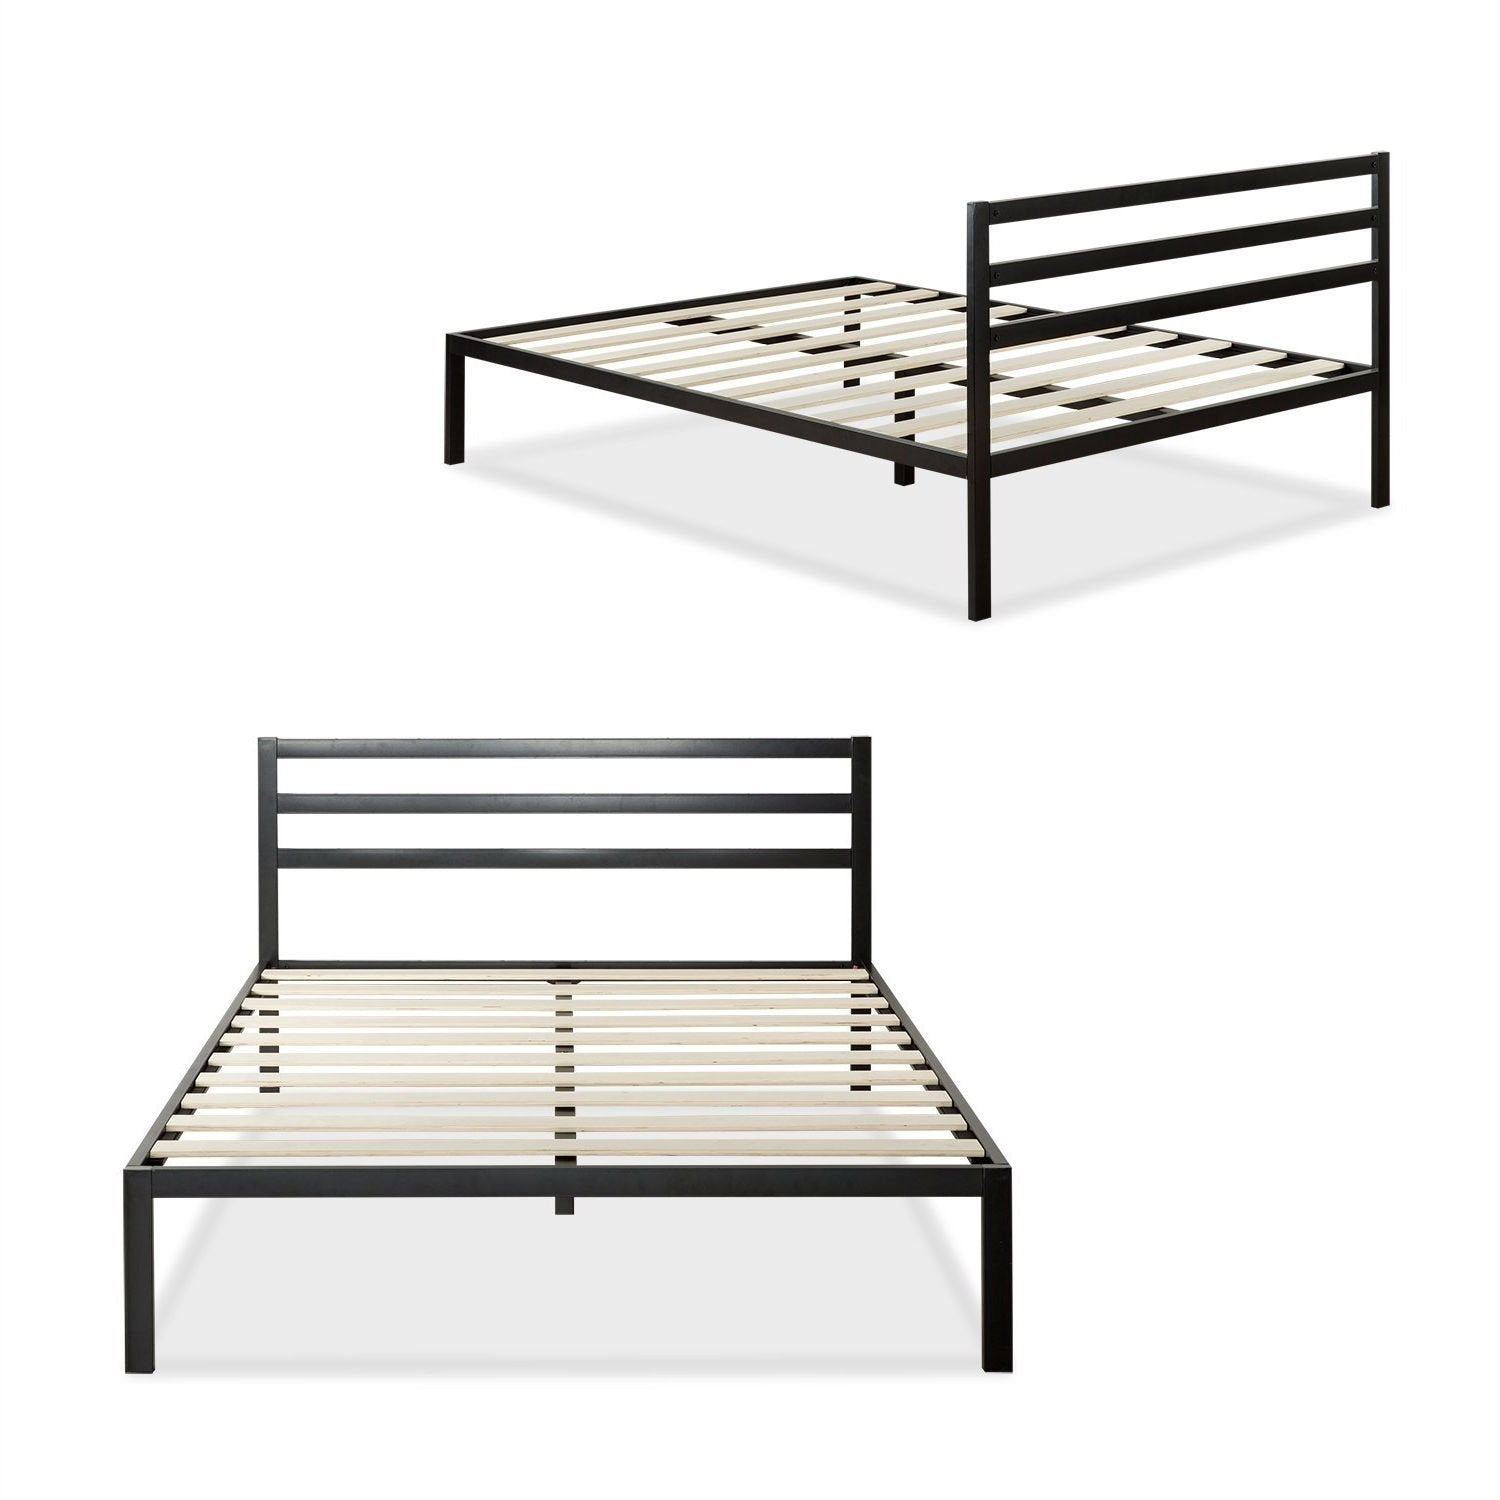 King Metal Platform Bed Frame with Headboard and Wood Slats